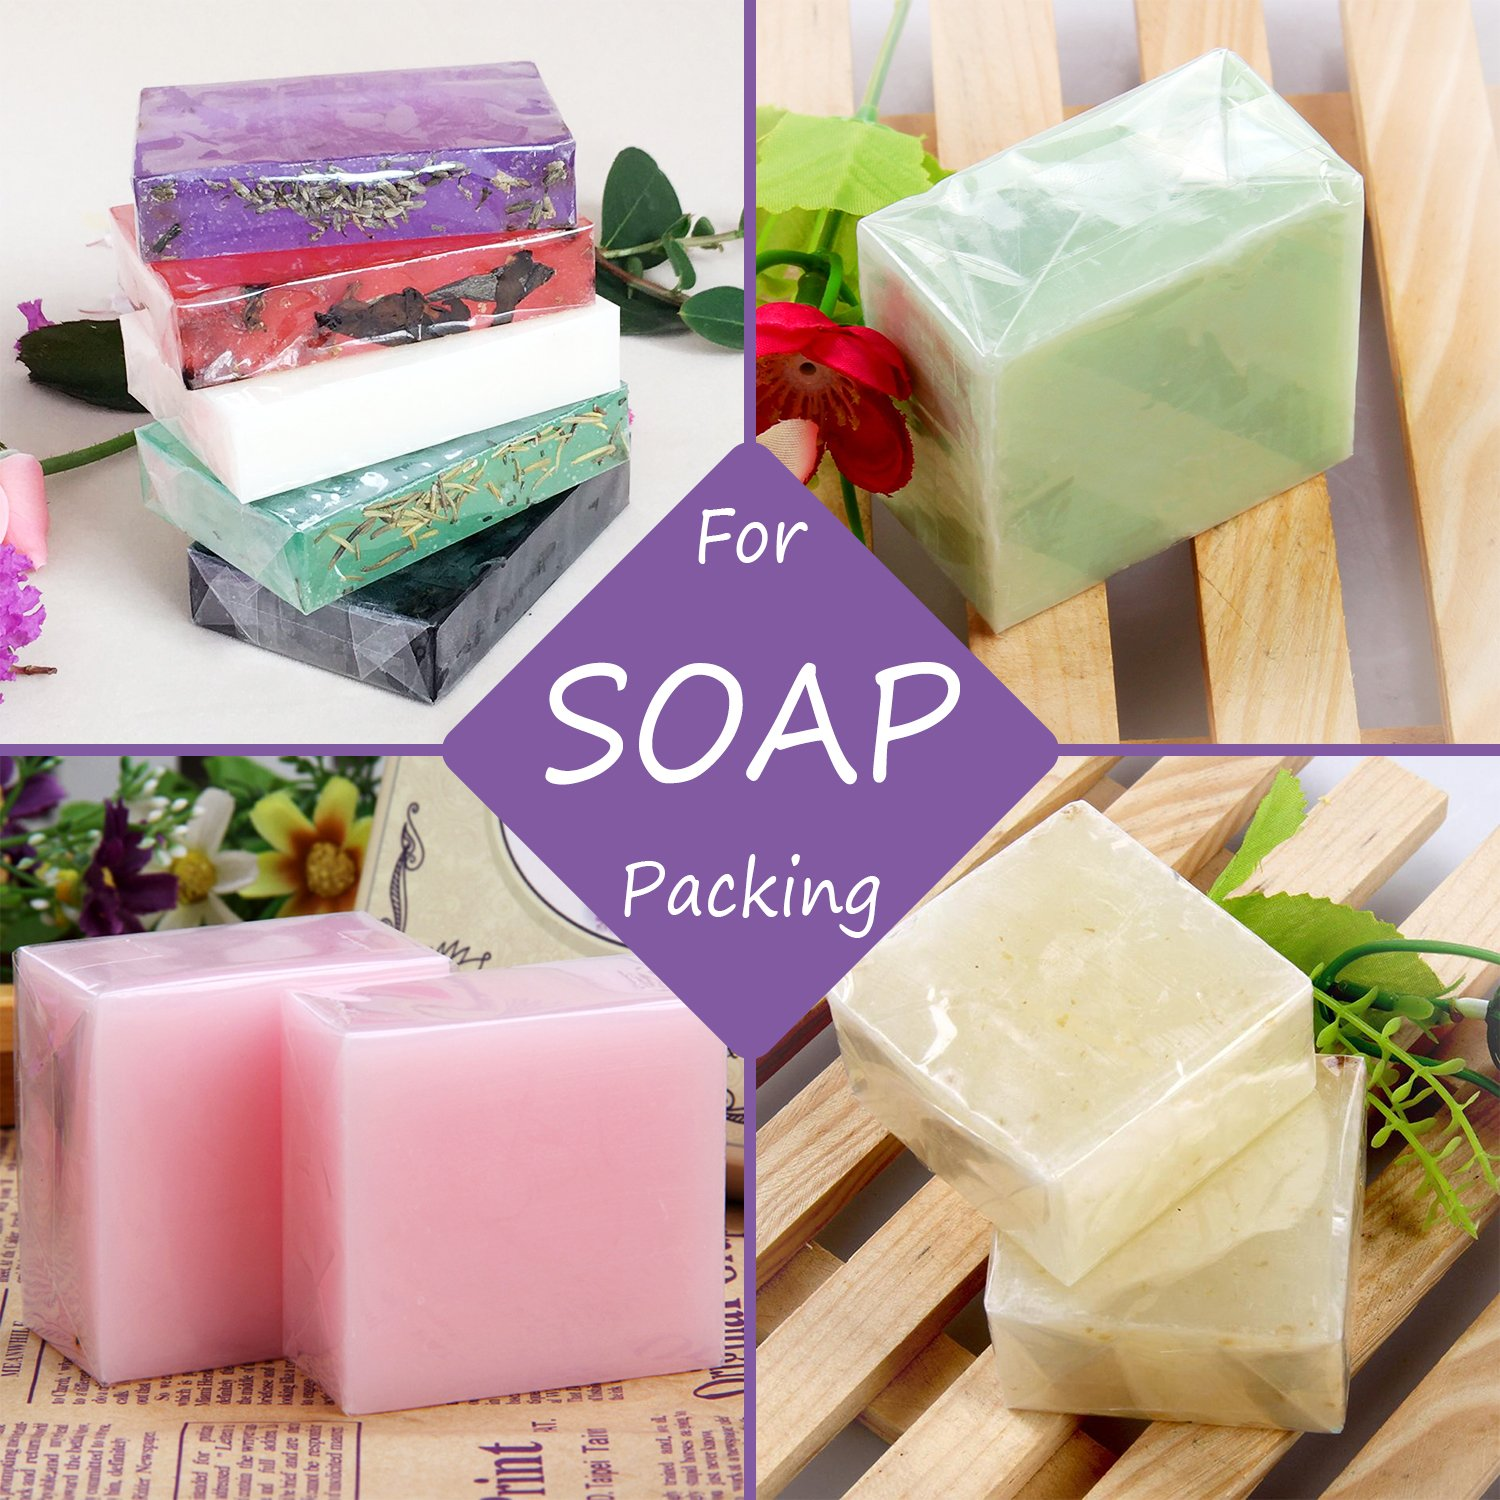 Handmade Soap Making Supplies Clear Heat Shrink Bags Gift Wrappers for DIY Bath Bomb Packaging Supplies Kit DecorRom Shrink Wrap Bags 300 Pcs Bath Bomb Bags for Little Items and DIY Crafts